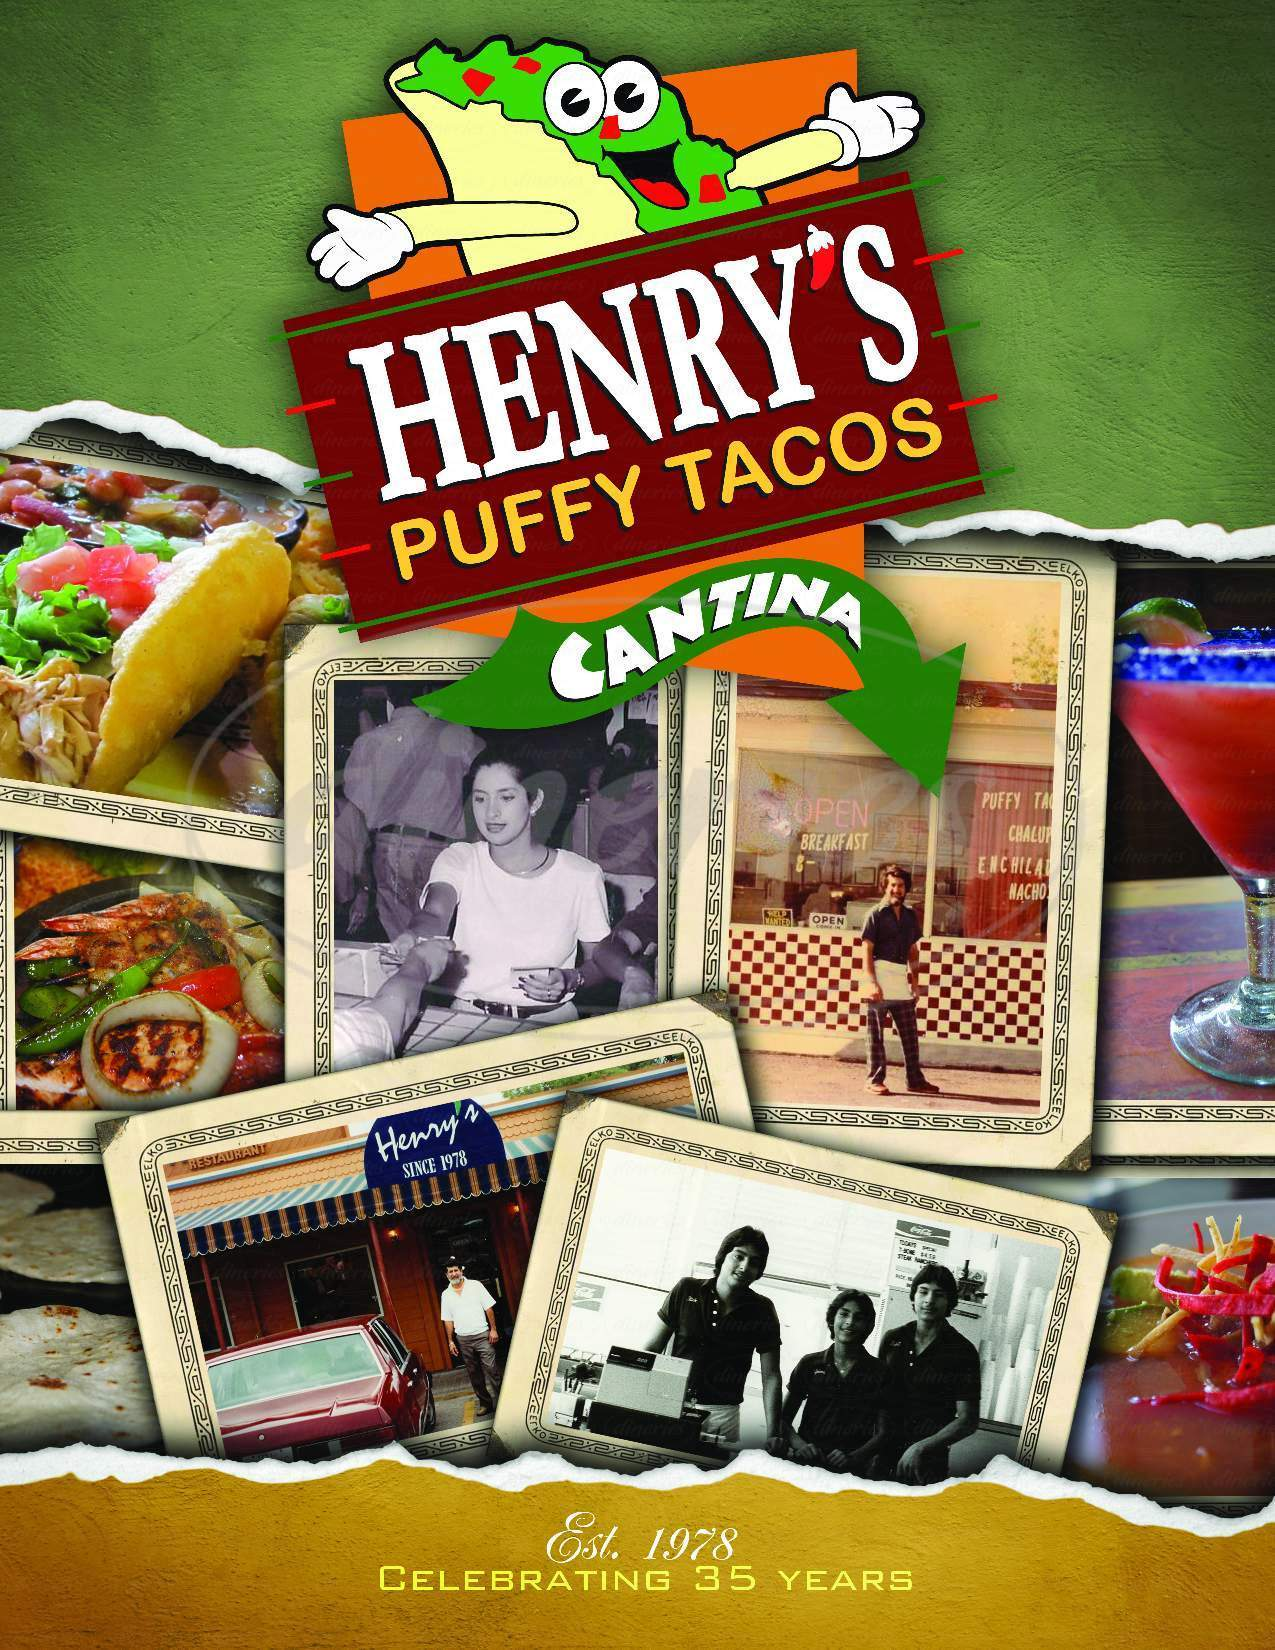 menu for Henry's Puffy Tacos